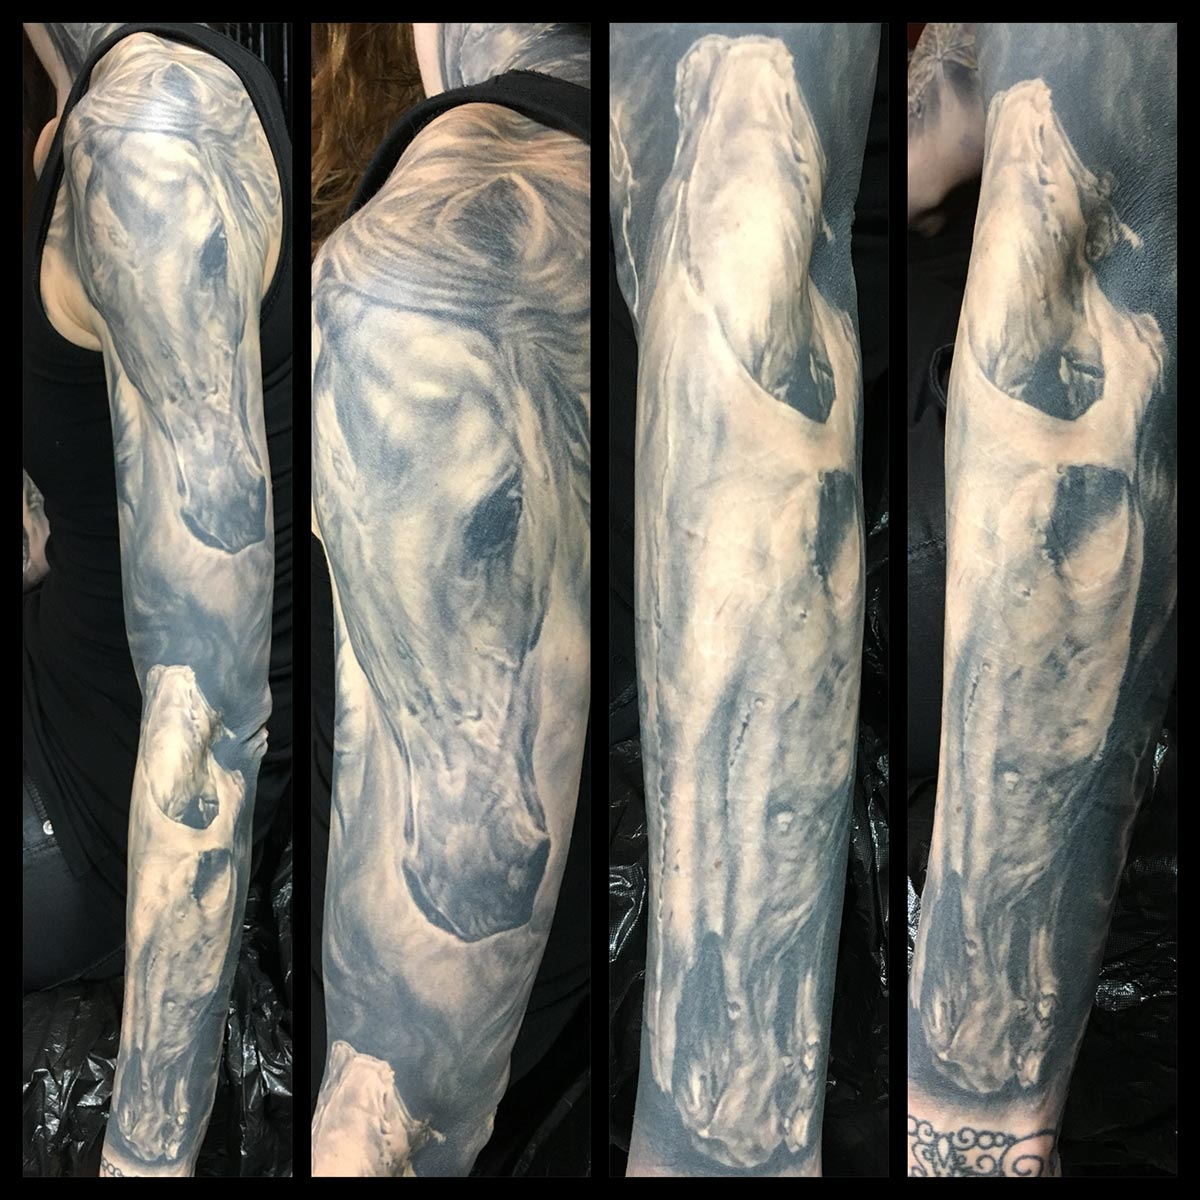 Black and Grey Live Horse Dead Horse Lighting Sleeve (healed).  Special care was taken to fit the horse skull into the anatomy of her arm for optimum sculptural effect.